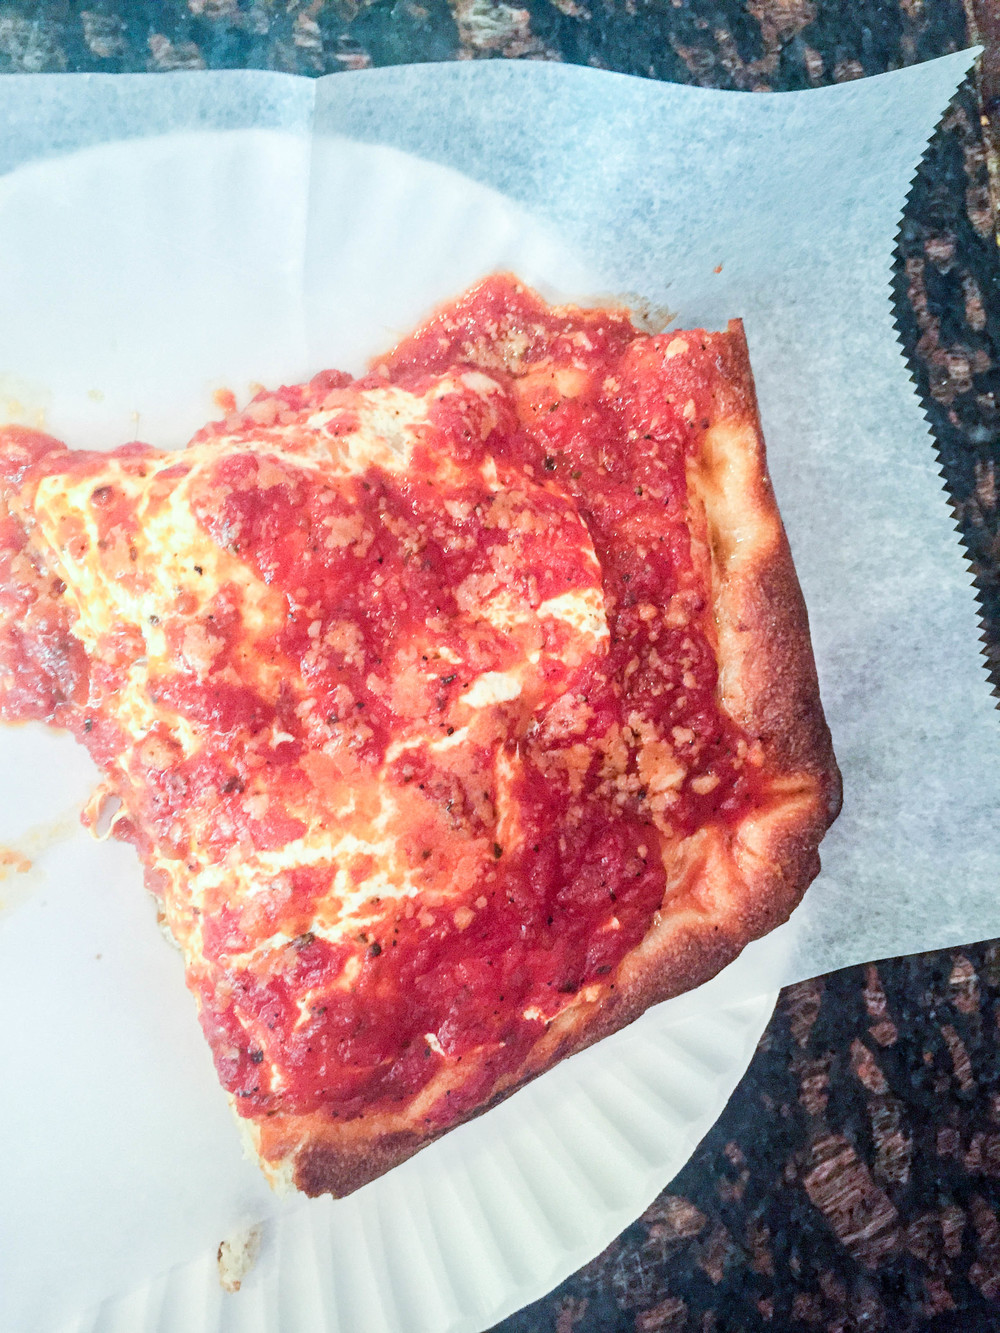 I could literally eat more than just one slice.  Tip: ask them to make it extra crispy when you order.